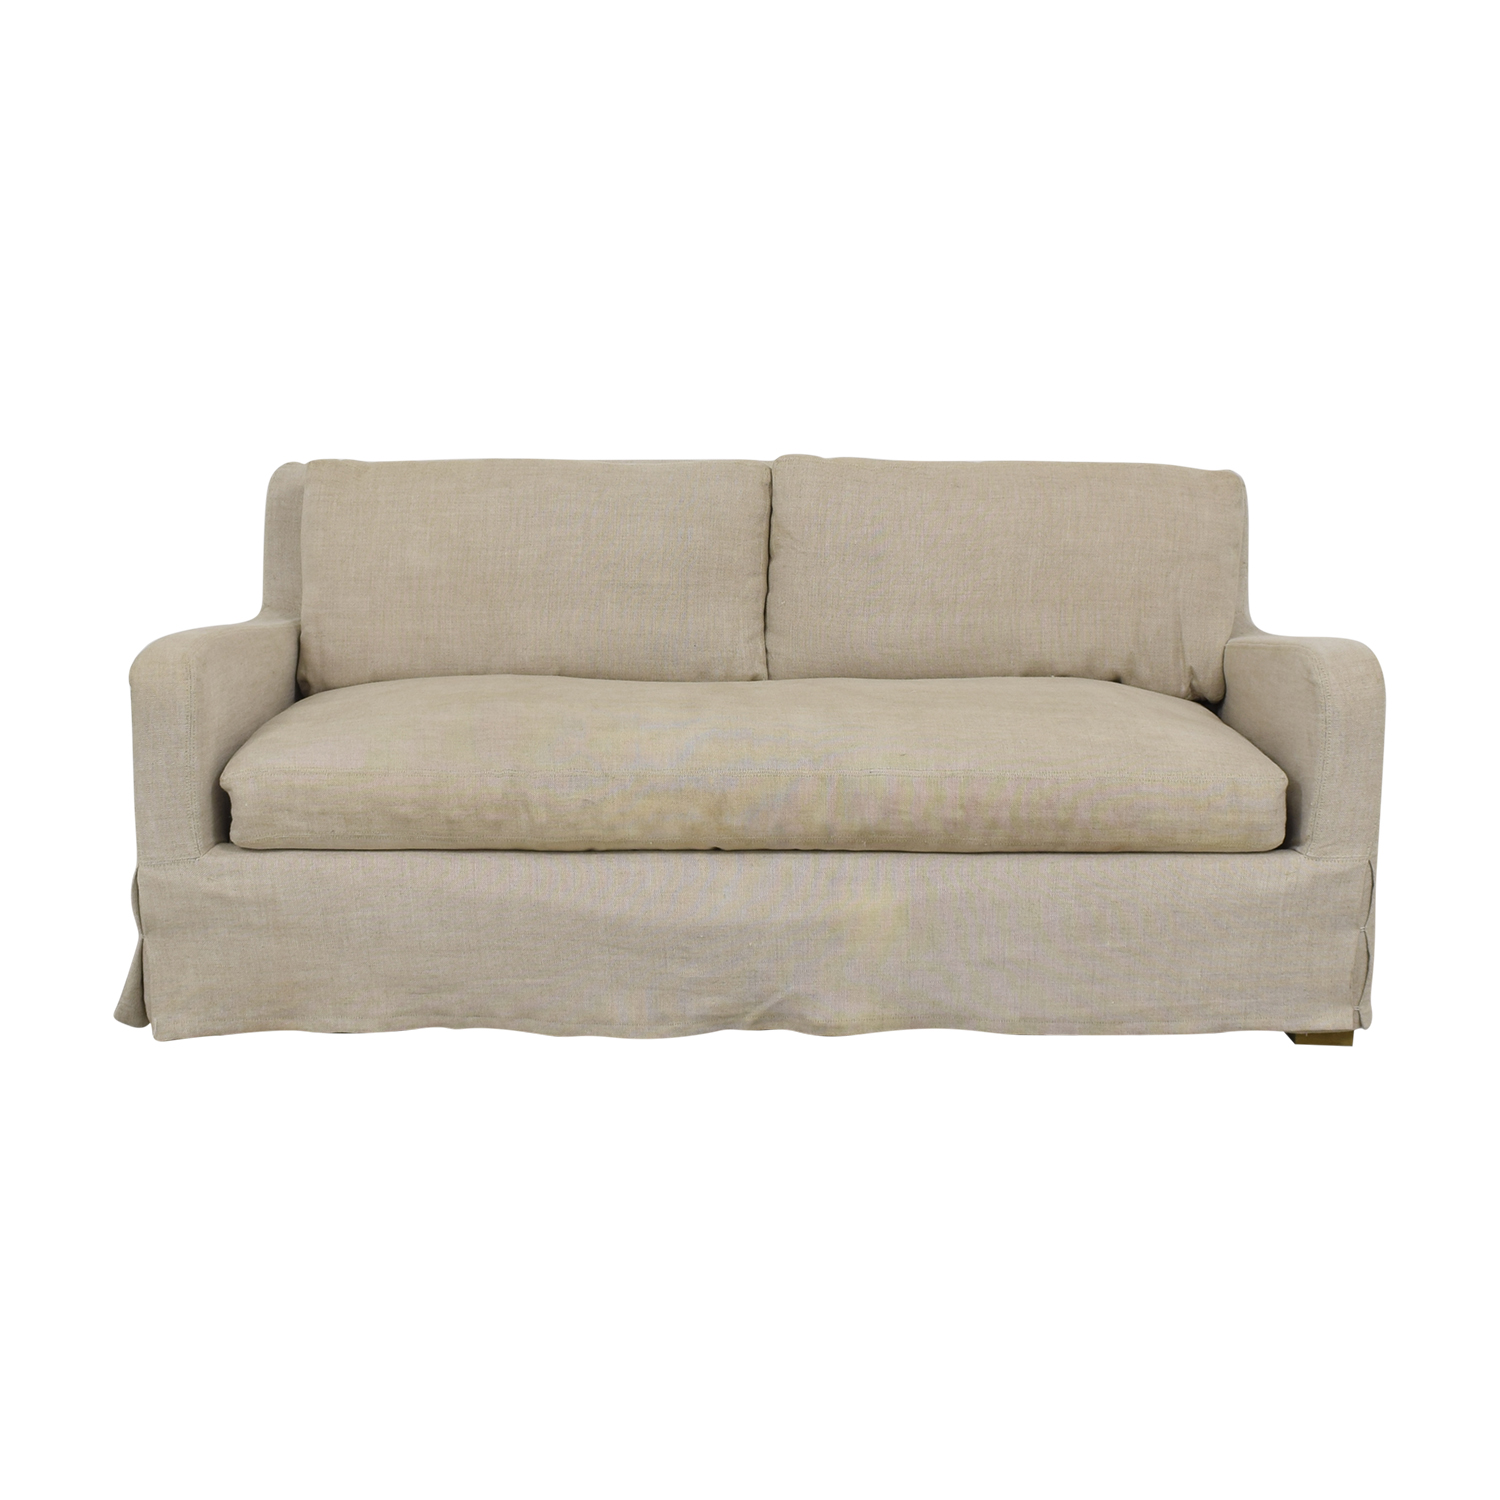 Restoration Hardware Restoration Hardware Belgian Slope Arm Slipcover Sofa discount